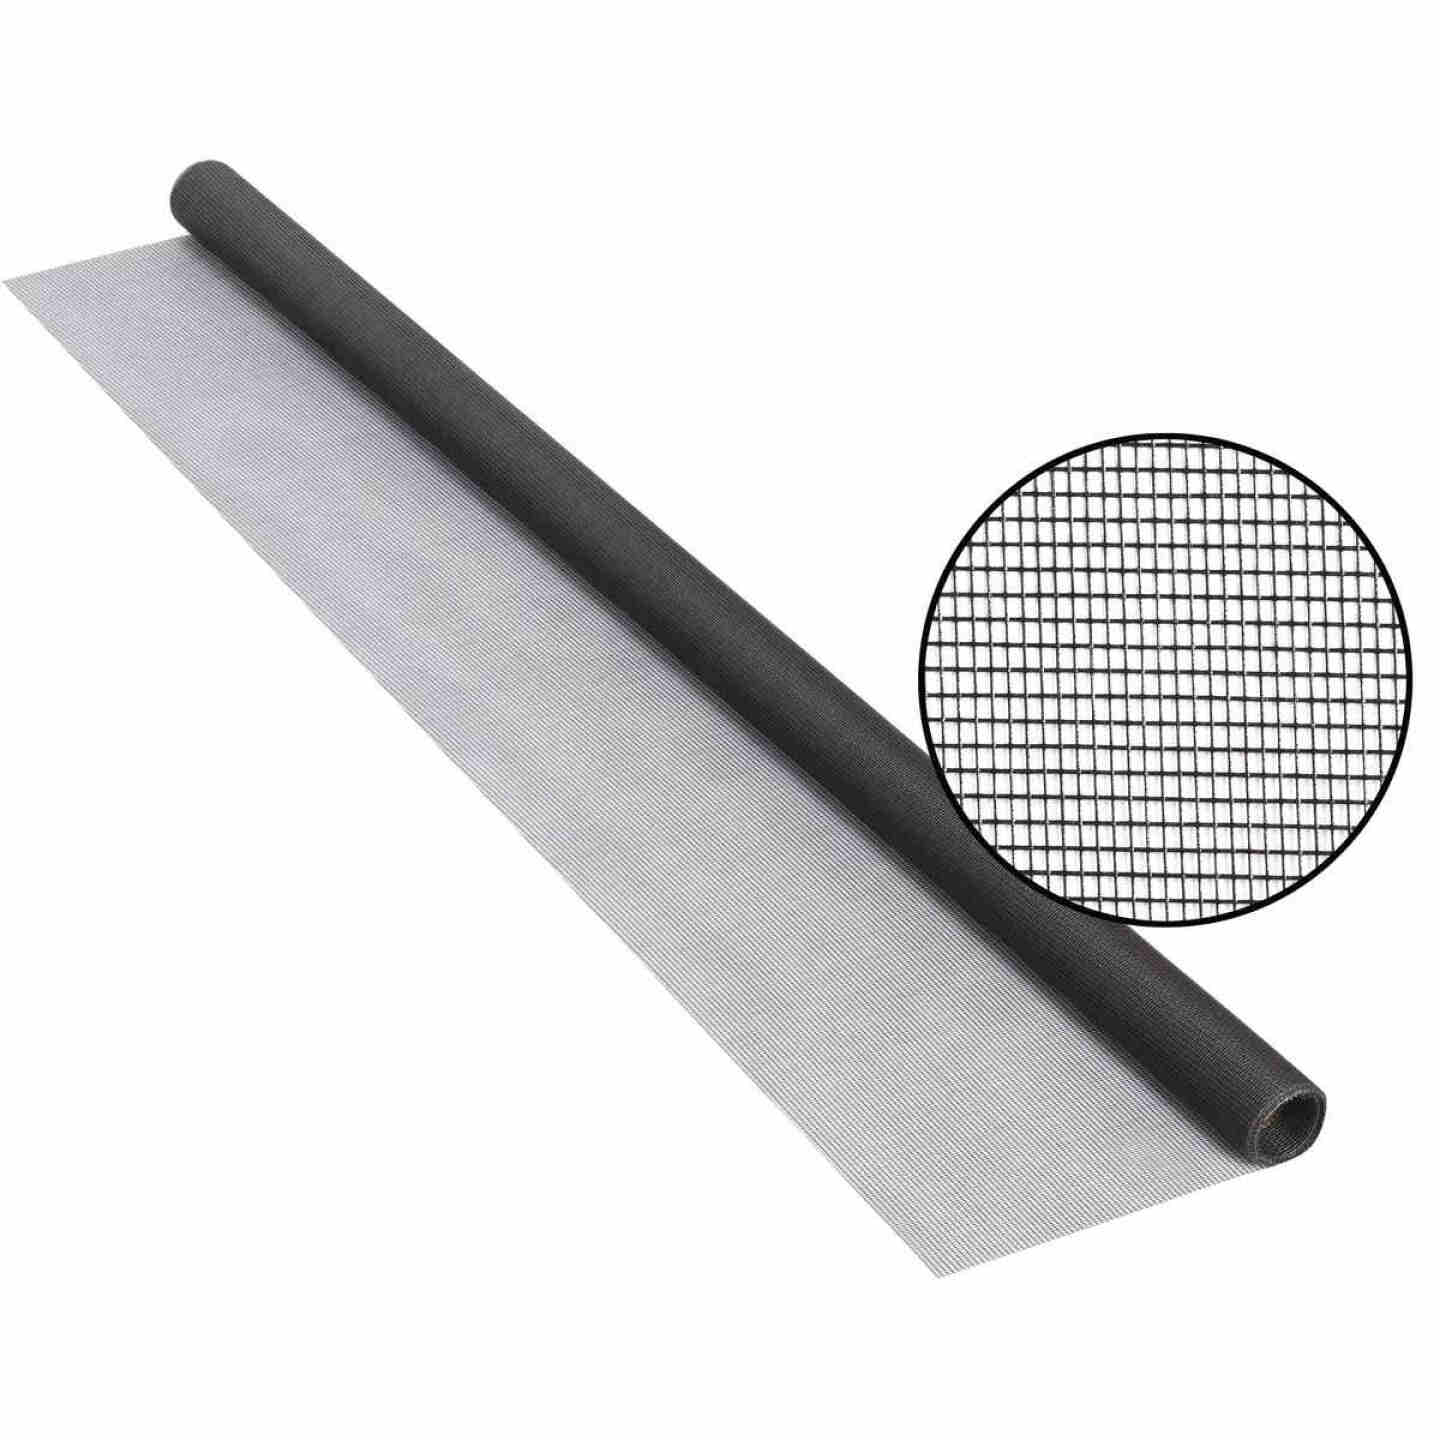 Phifer 30 In. x 84 In. Charcoal Fiberglass Screen Cloth Ready Rolls Image 1